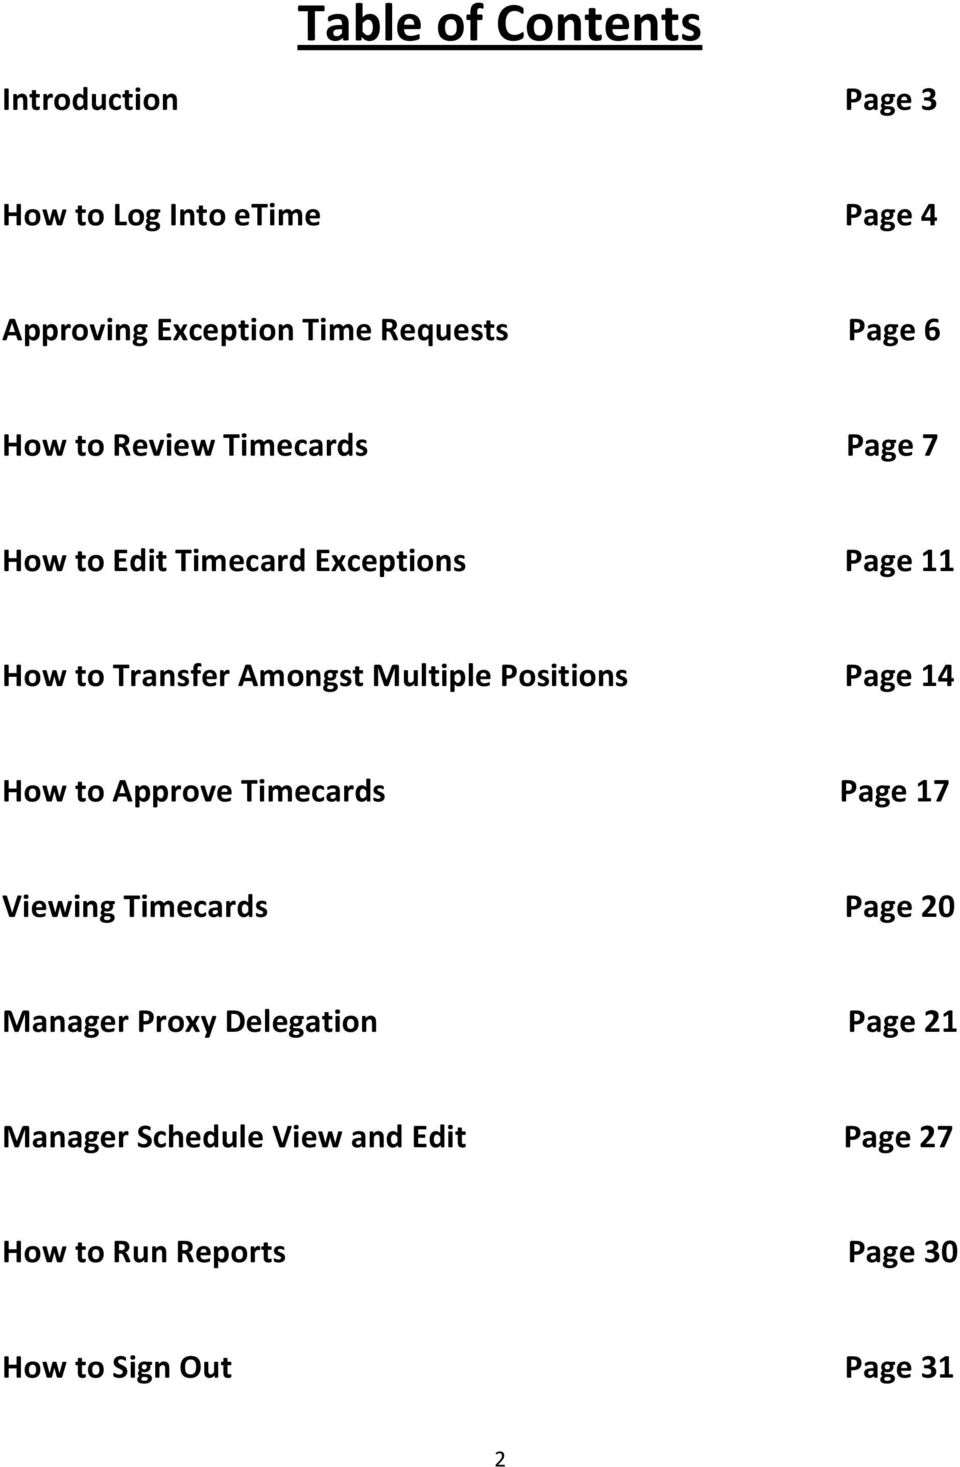 Multiple Positions Page 14 How to Approve Timecards Page 17 Viewing Timecards Page 20 Manager Proxy